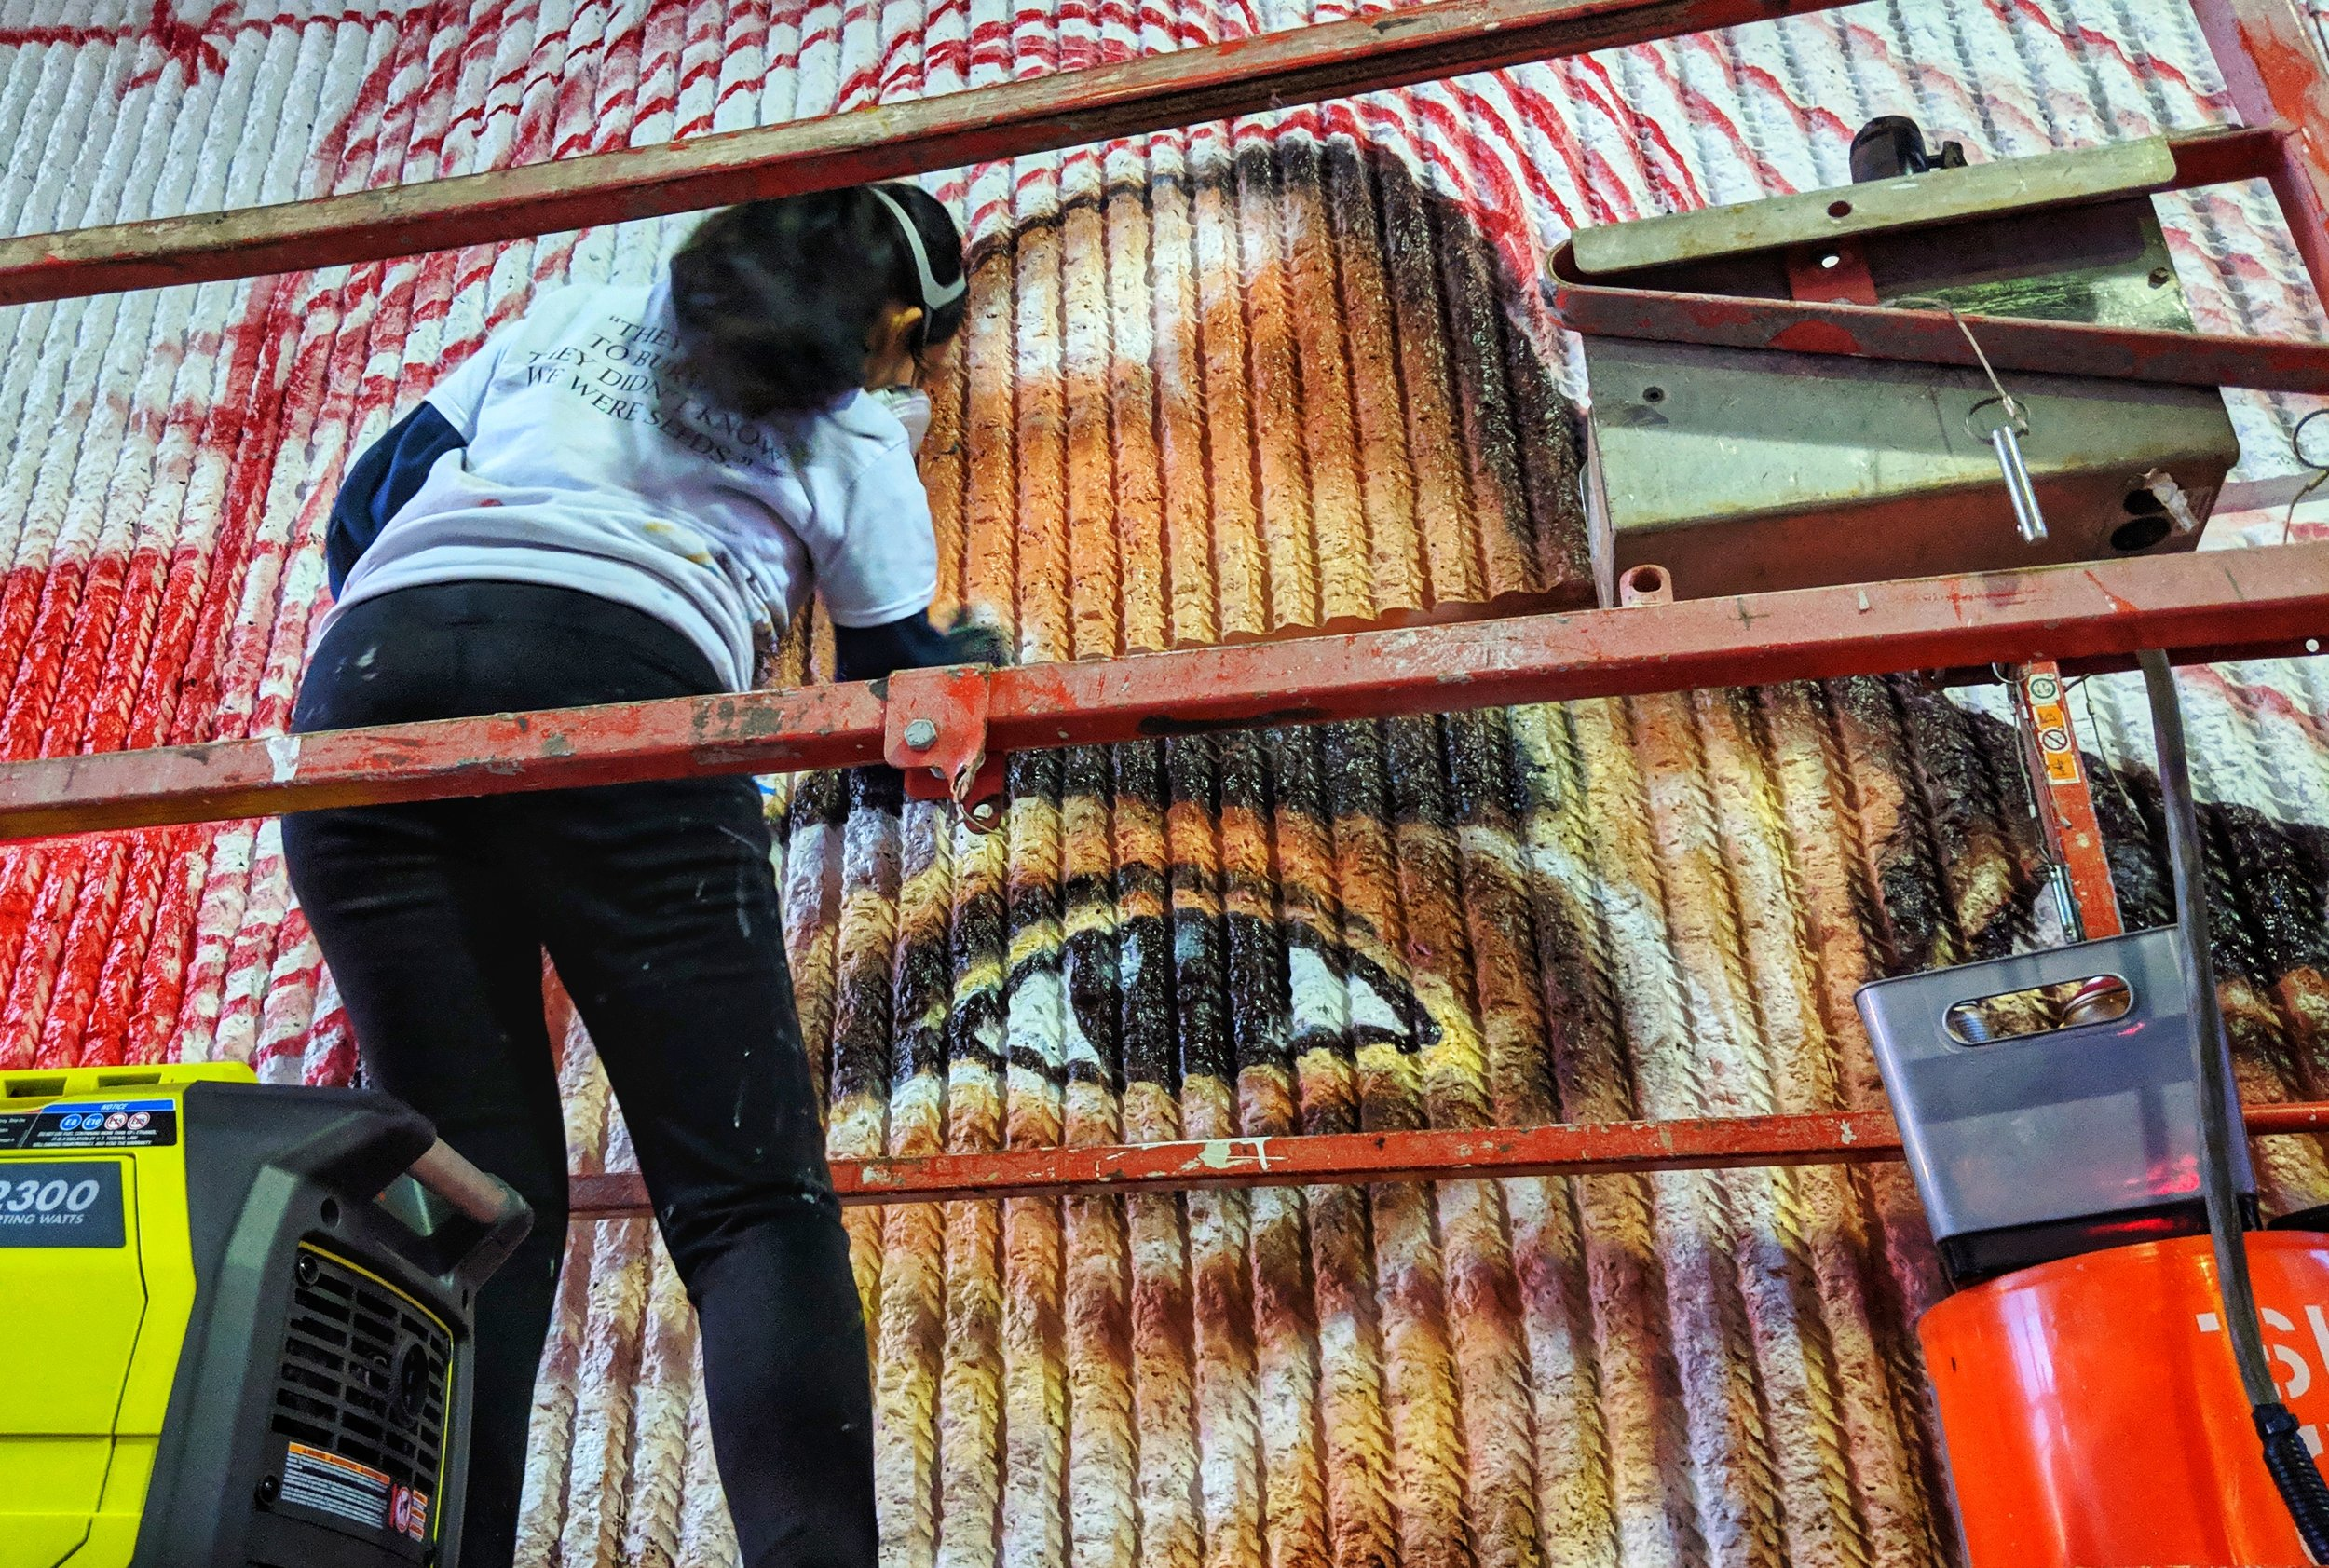 A picture of an artist creating a mural